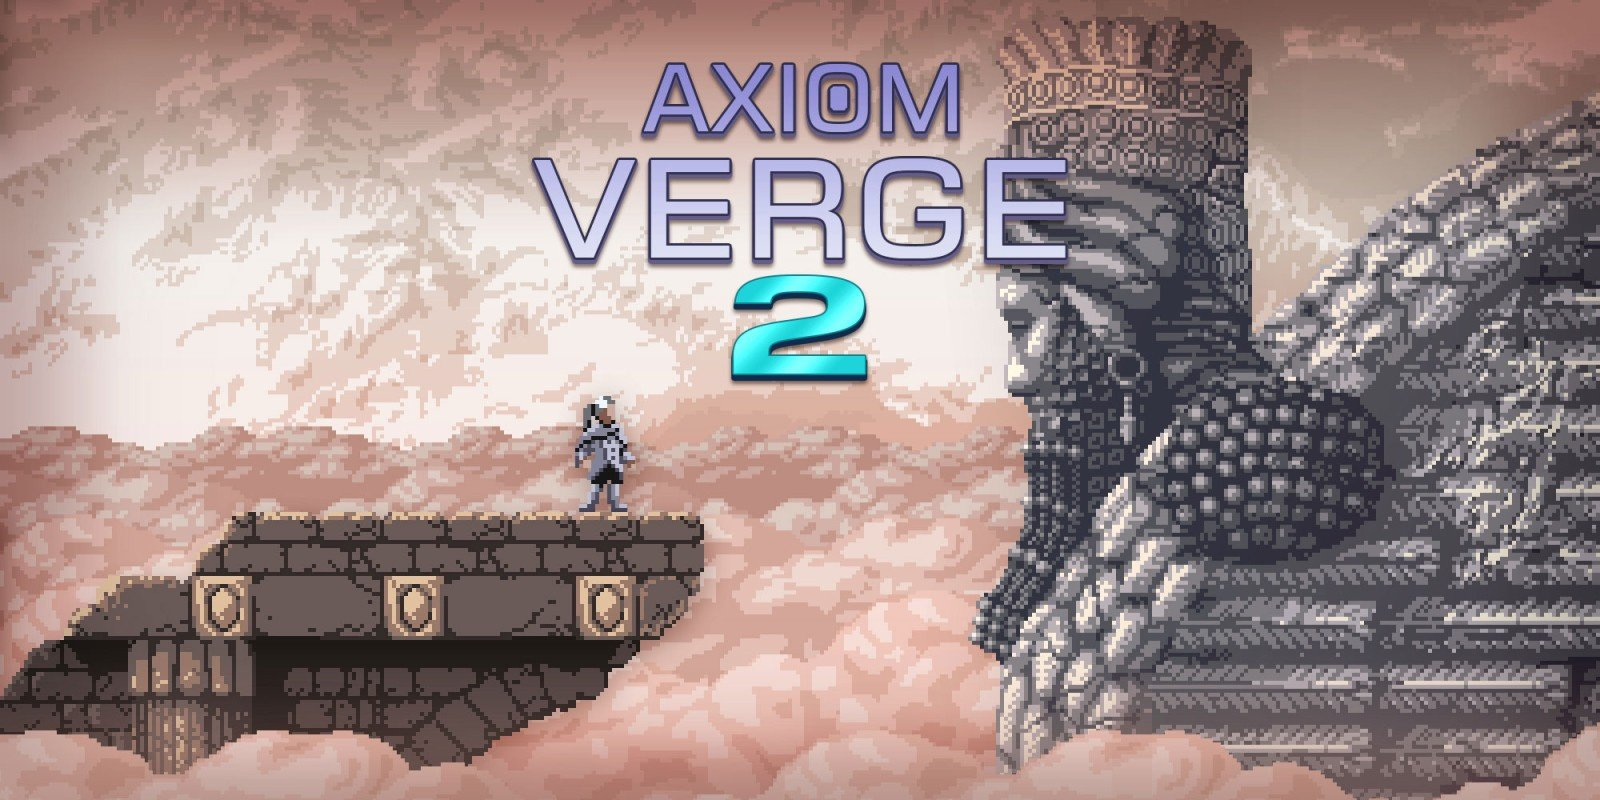 Axiom Verge 2 delayed until later this year